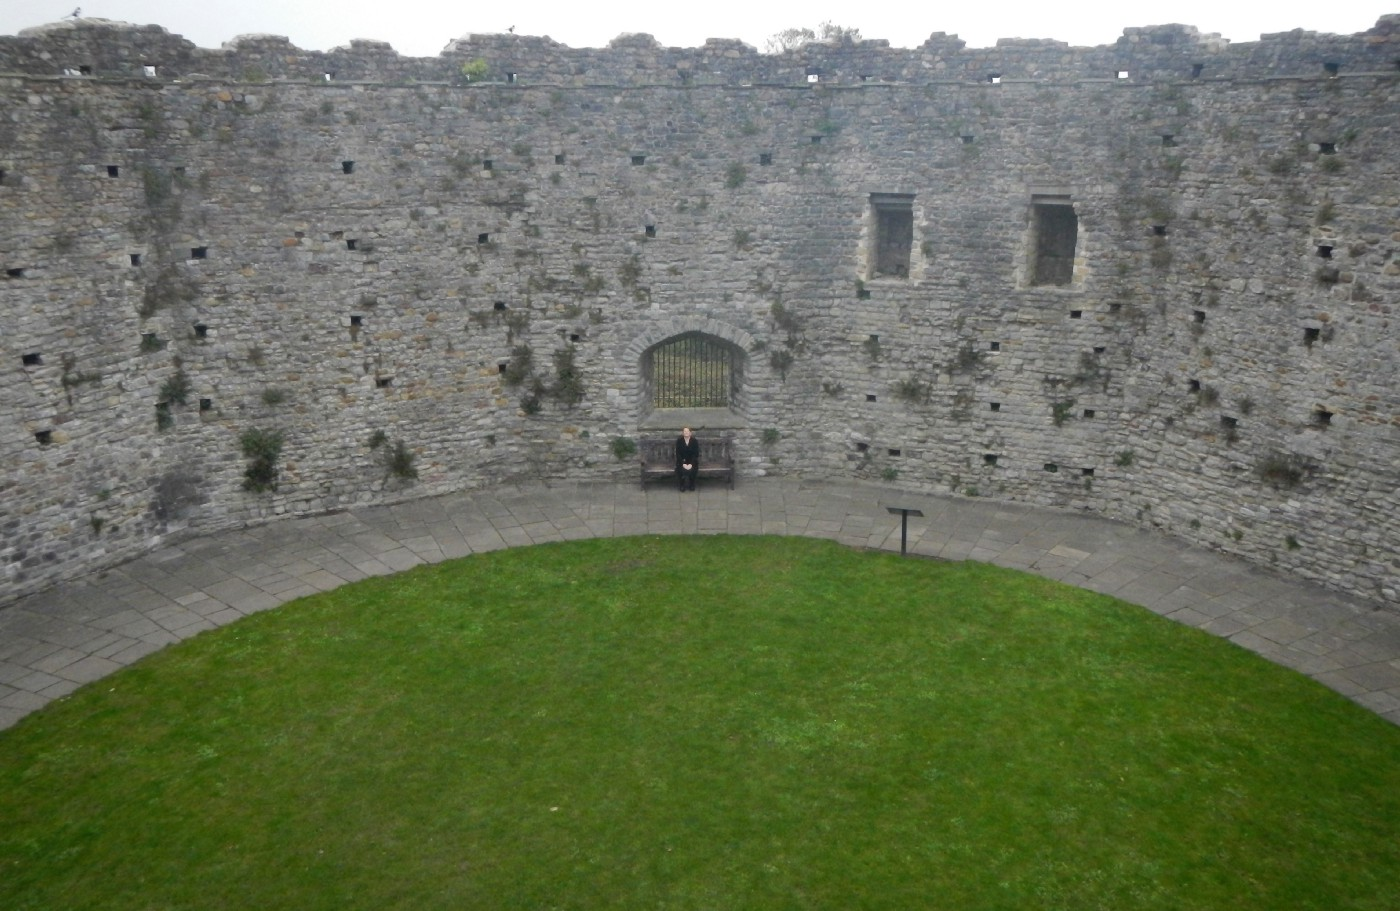 Woman sitting alone on a bench with castle walls in the background